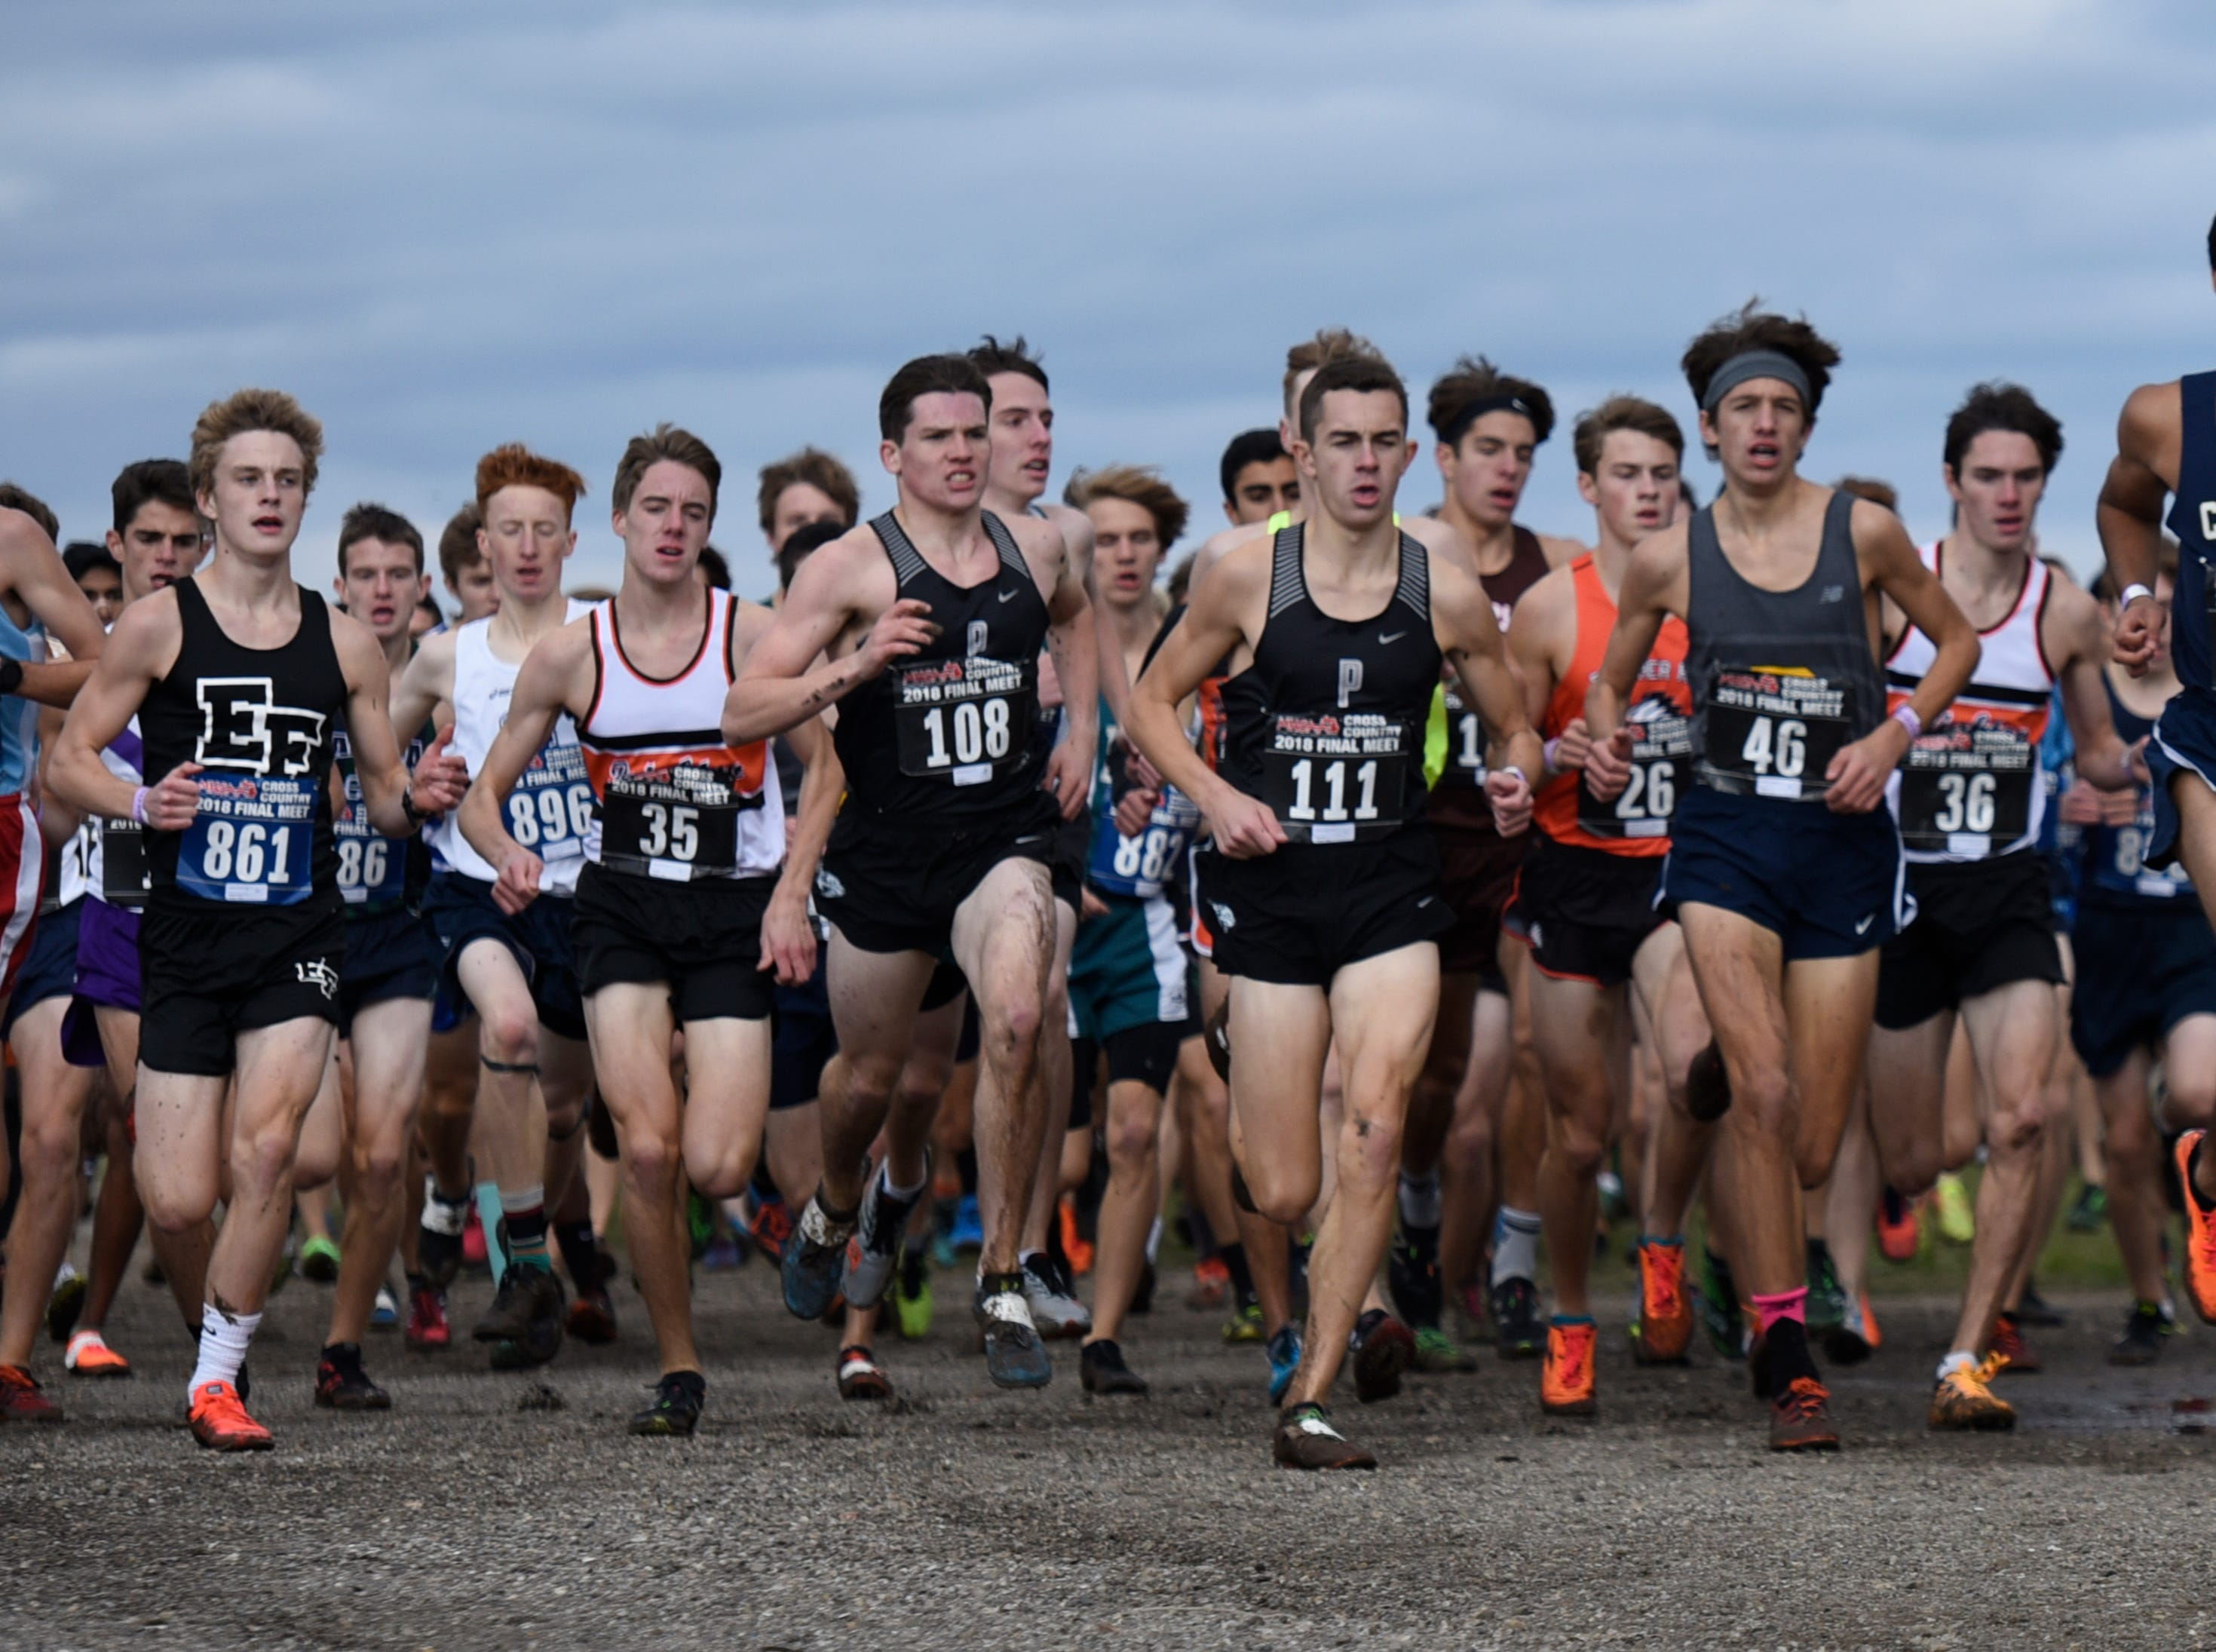 Plymouth's Patrick Barnes (108) and Carter Solomon (111) at front of the pack early in the Division 1 2018 cross country finals at Michigan International Speedway.